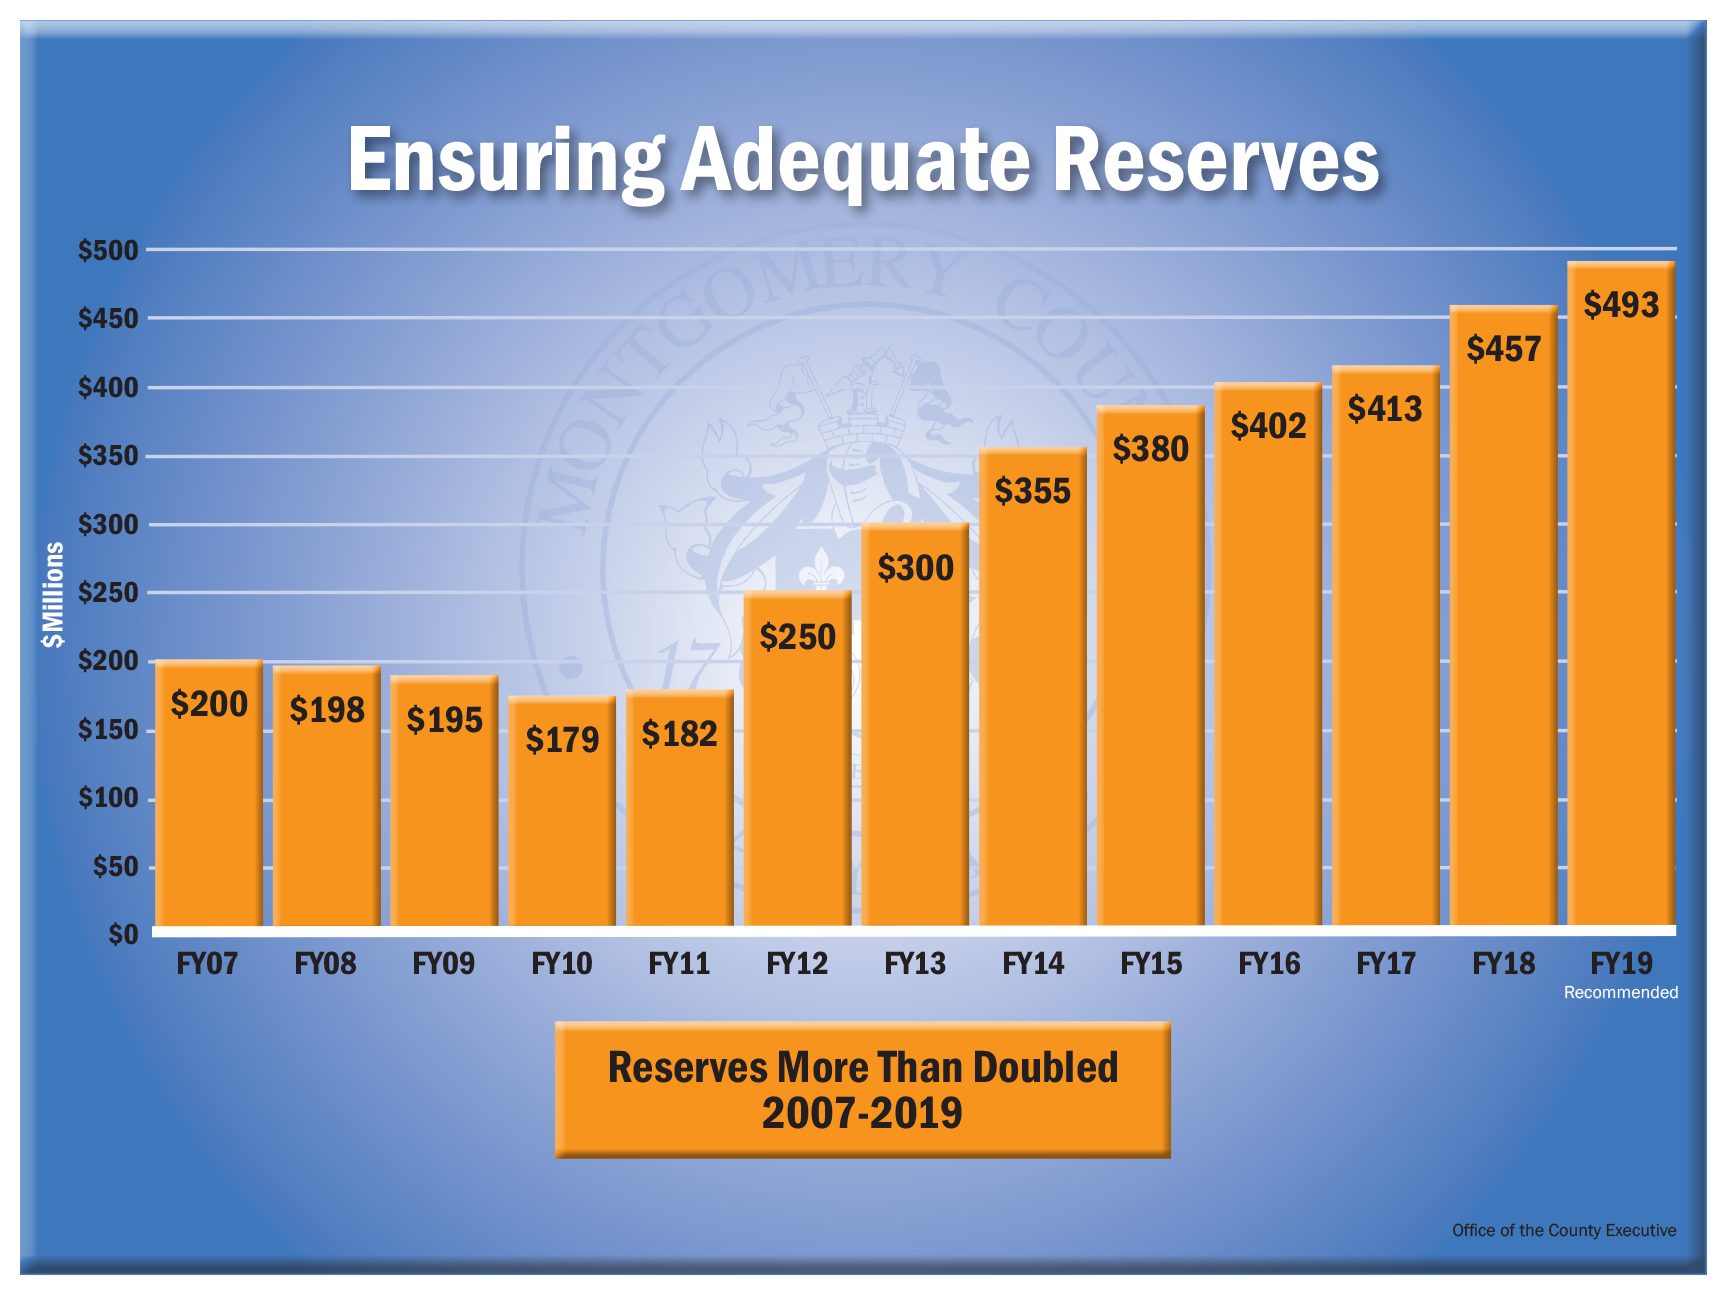 Ensuring Adequate Reserves